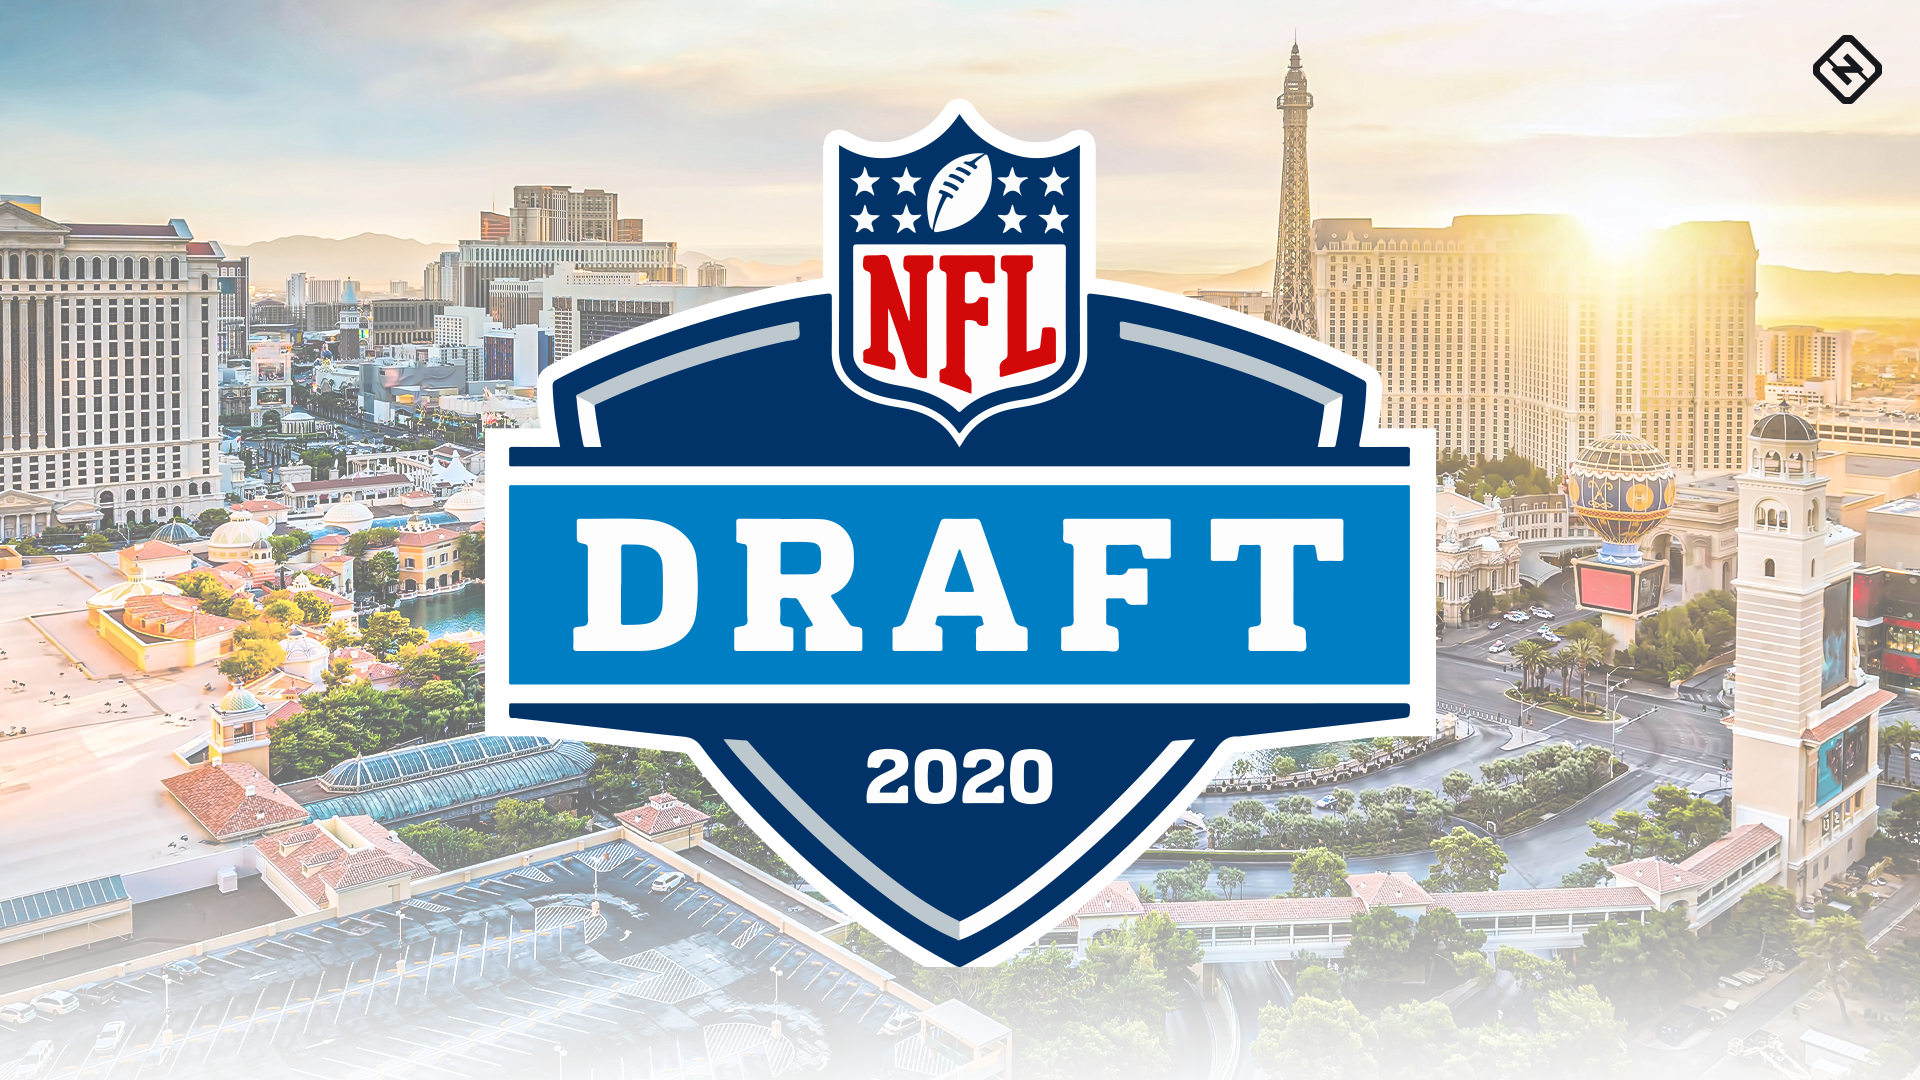 Nfl Draft Order 2020 Giants Win Over Dolphins Puts Bengals